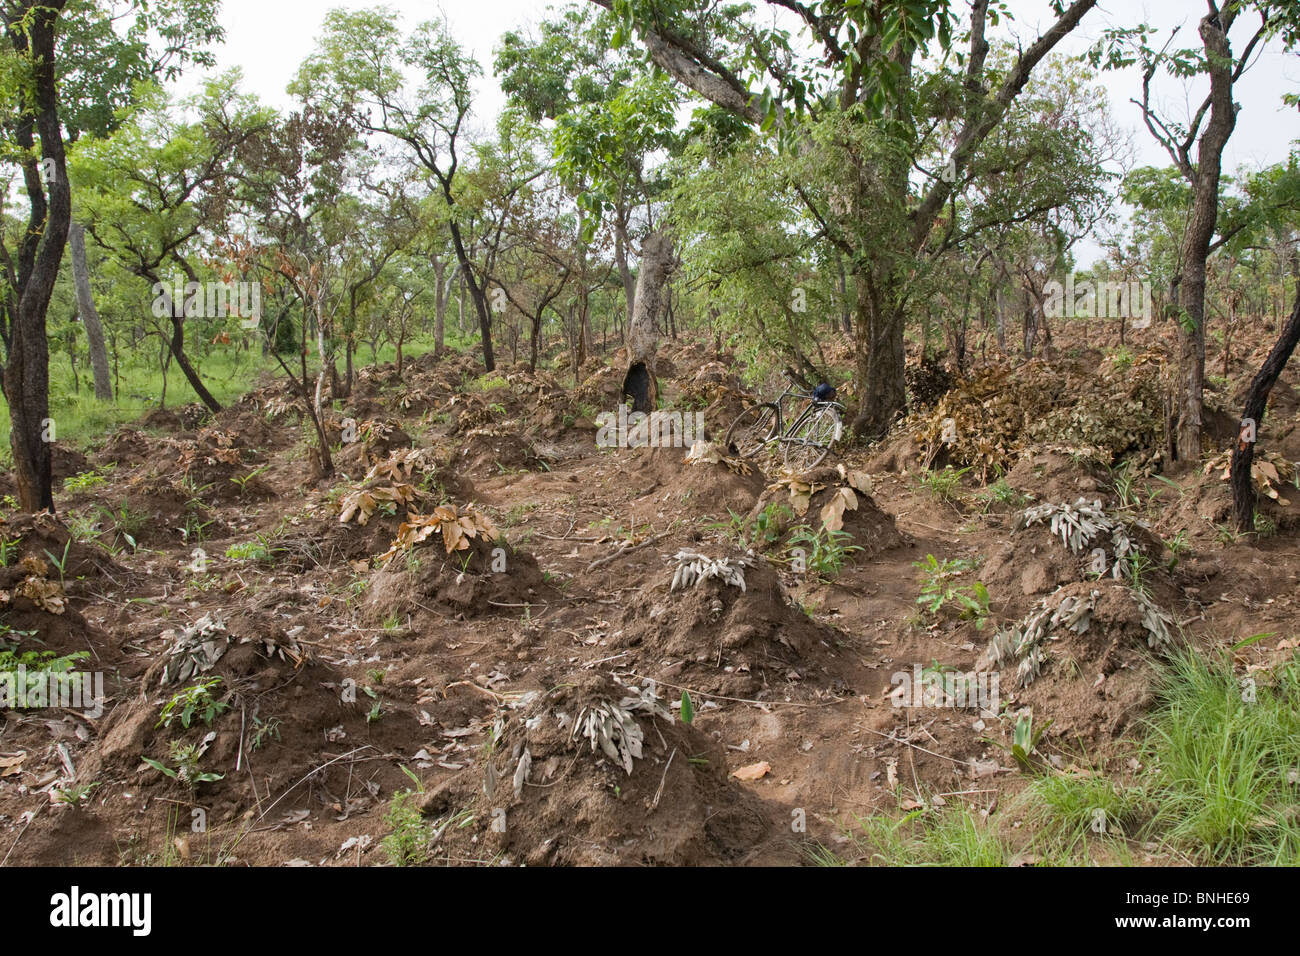 Yam cultivation in the Gonja triangle, Damango district, Ghana. Stock Photo